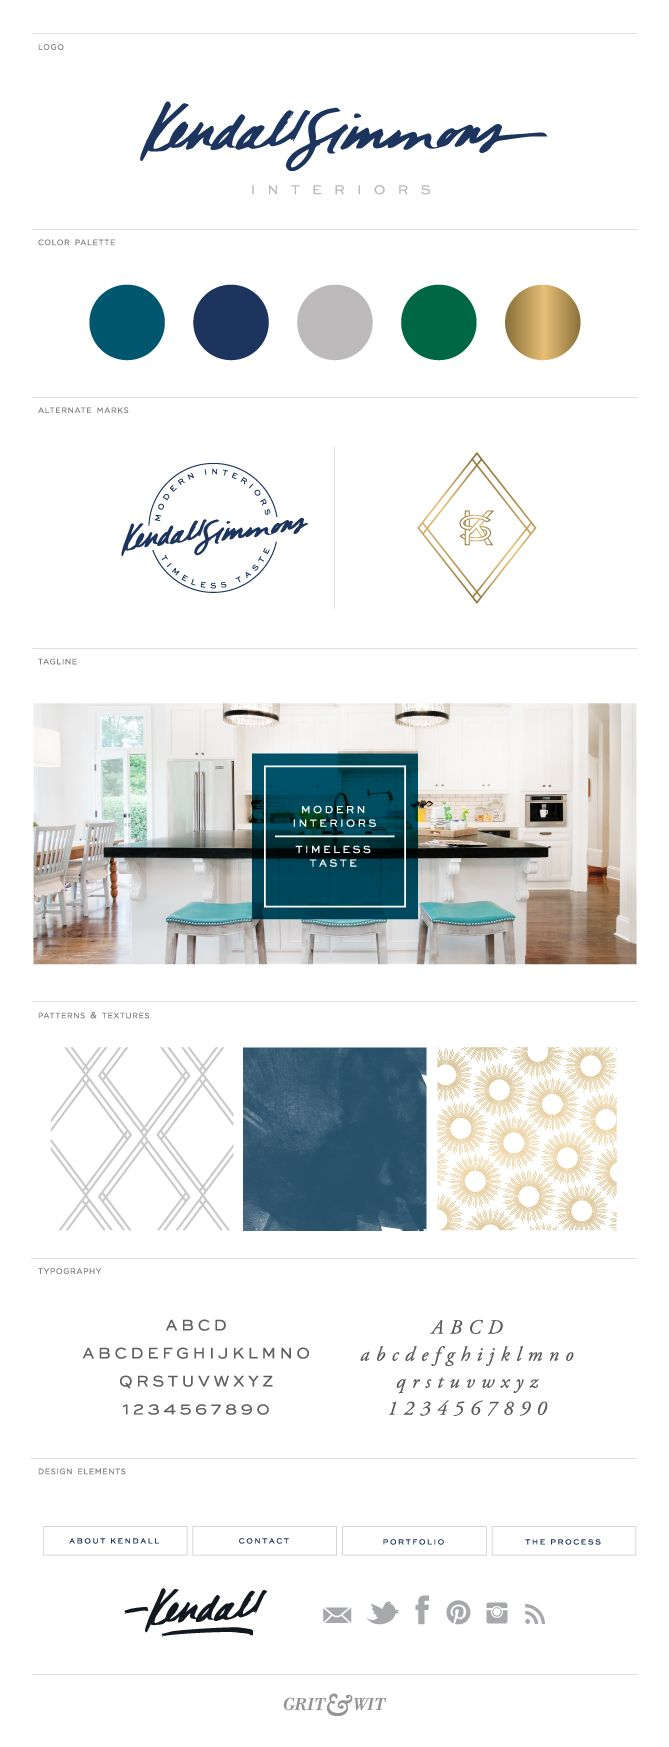 Brand Reveal // Kendall Simmons Interiors - Grit & Wit